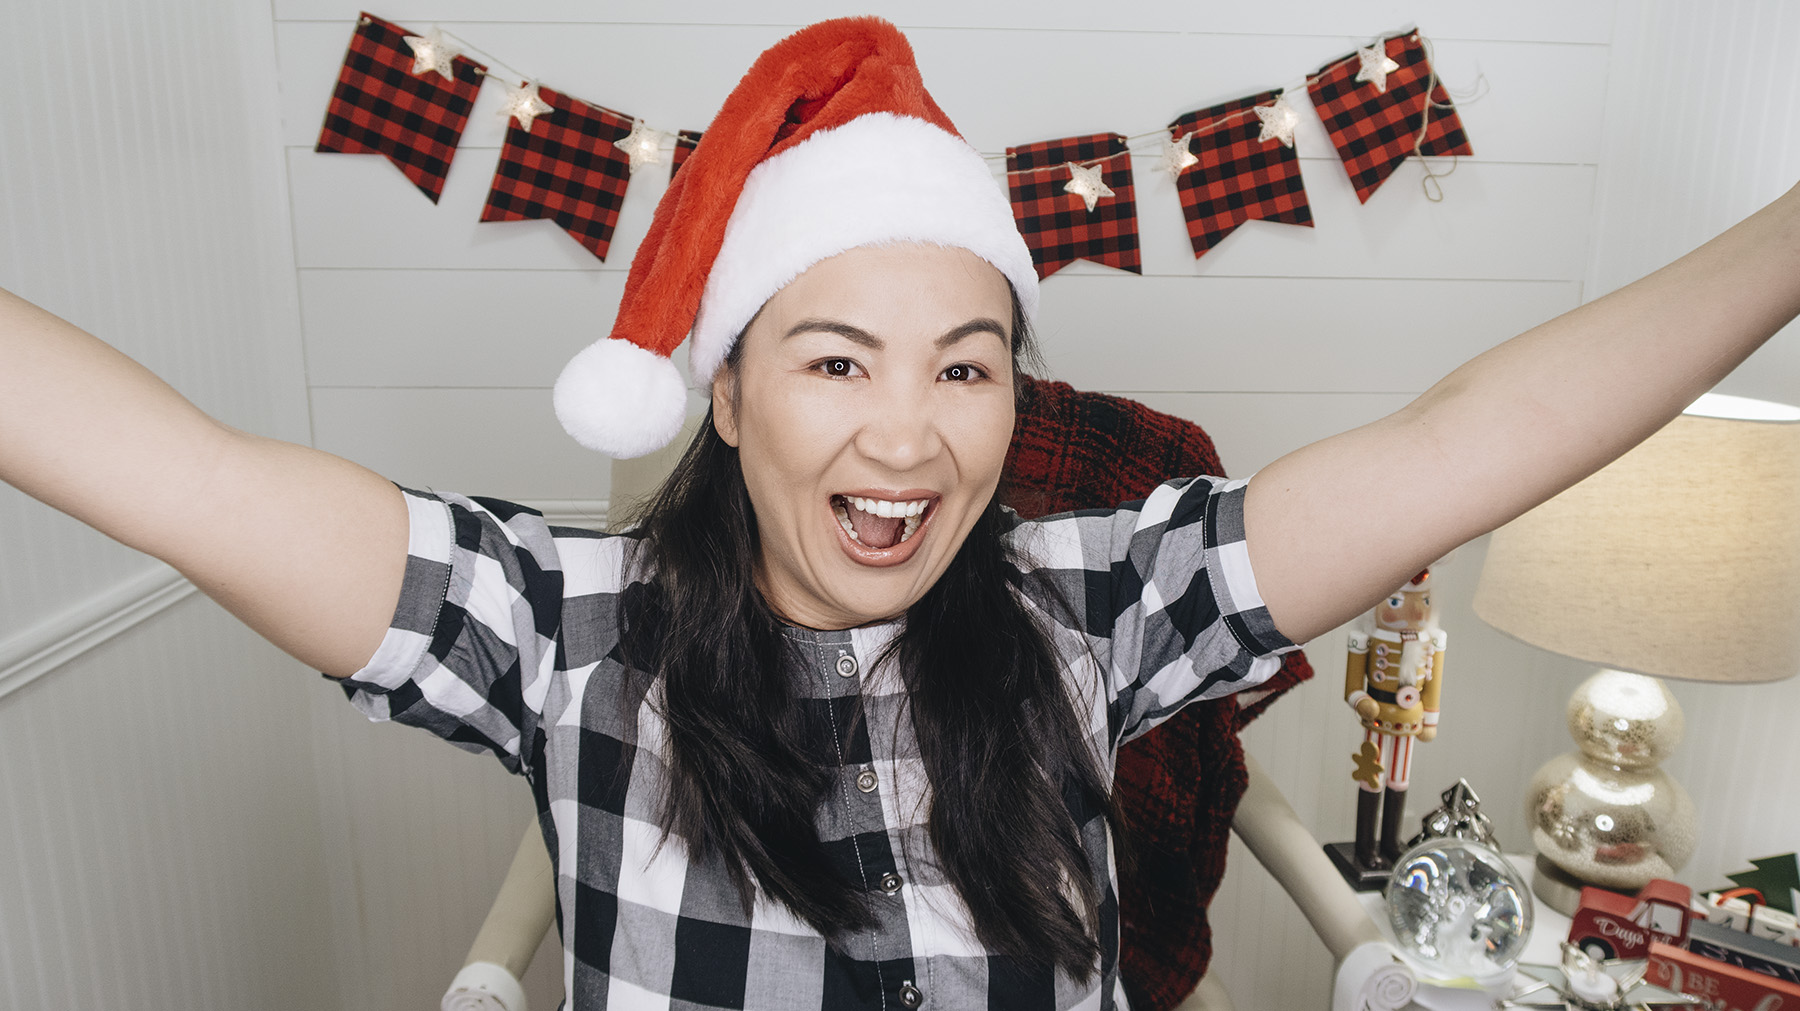 vlogmas, 2018, video, youtube, vlogs, christmas, haul, shopping, cooking, activities, holidays,